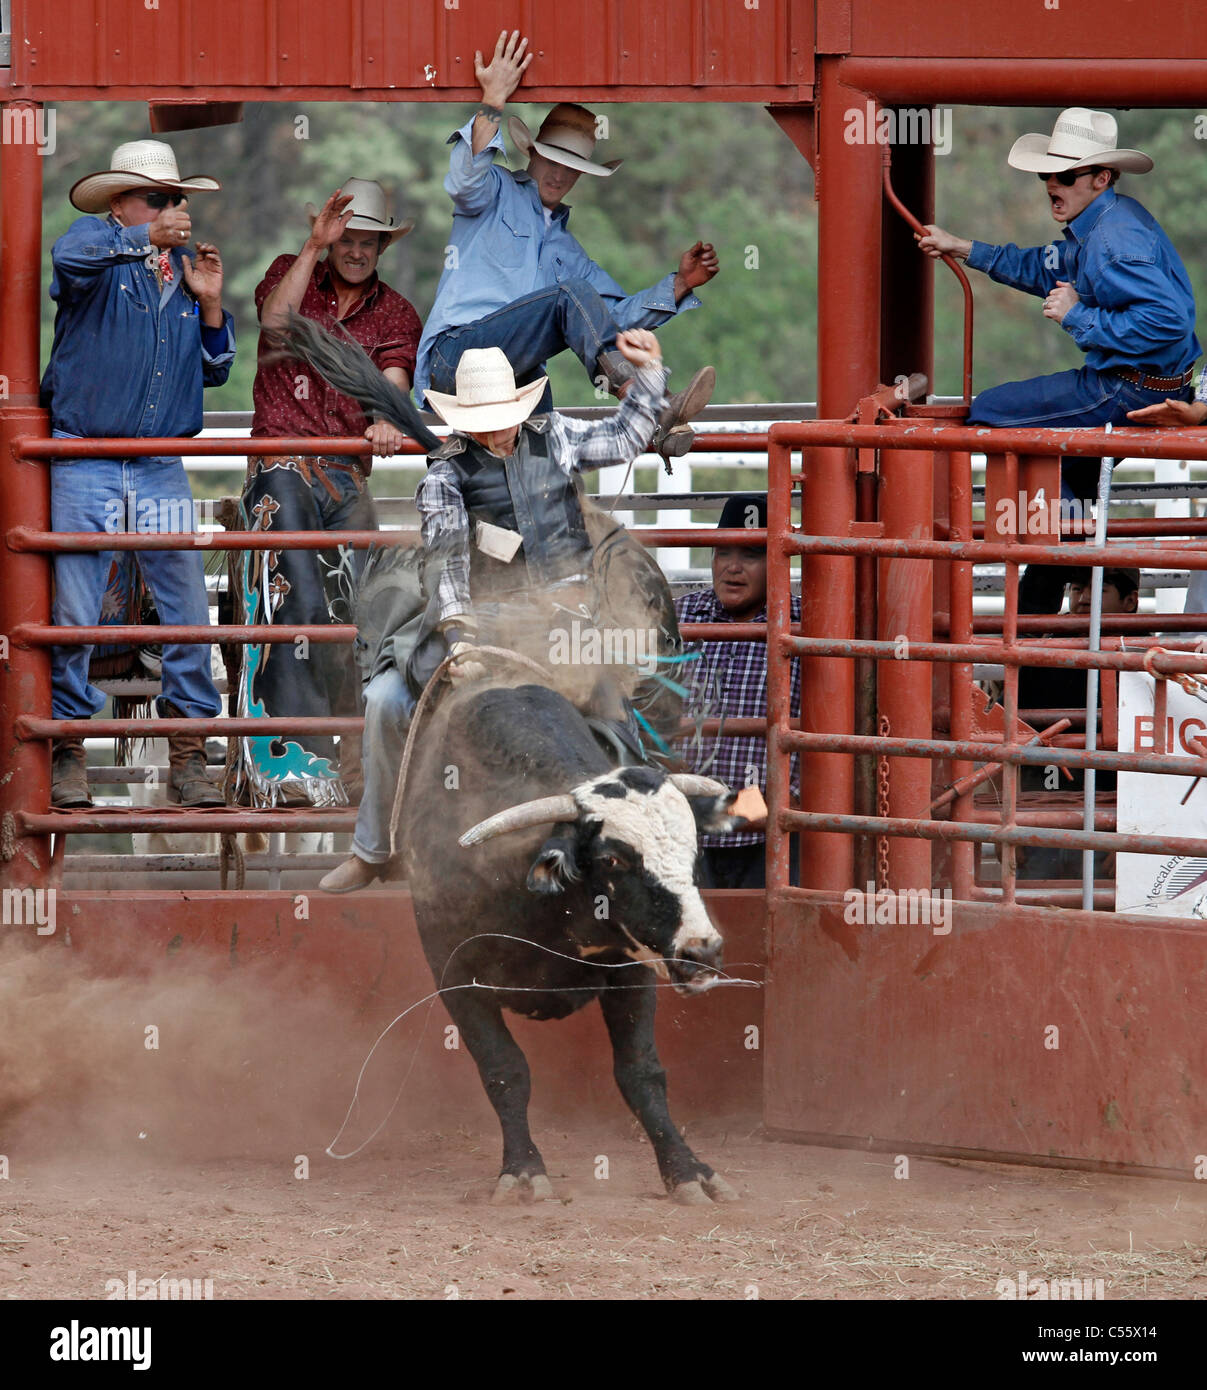 Rodeo Bull Stock Photos Amp Rodeo Bull Stock Images Alamy